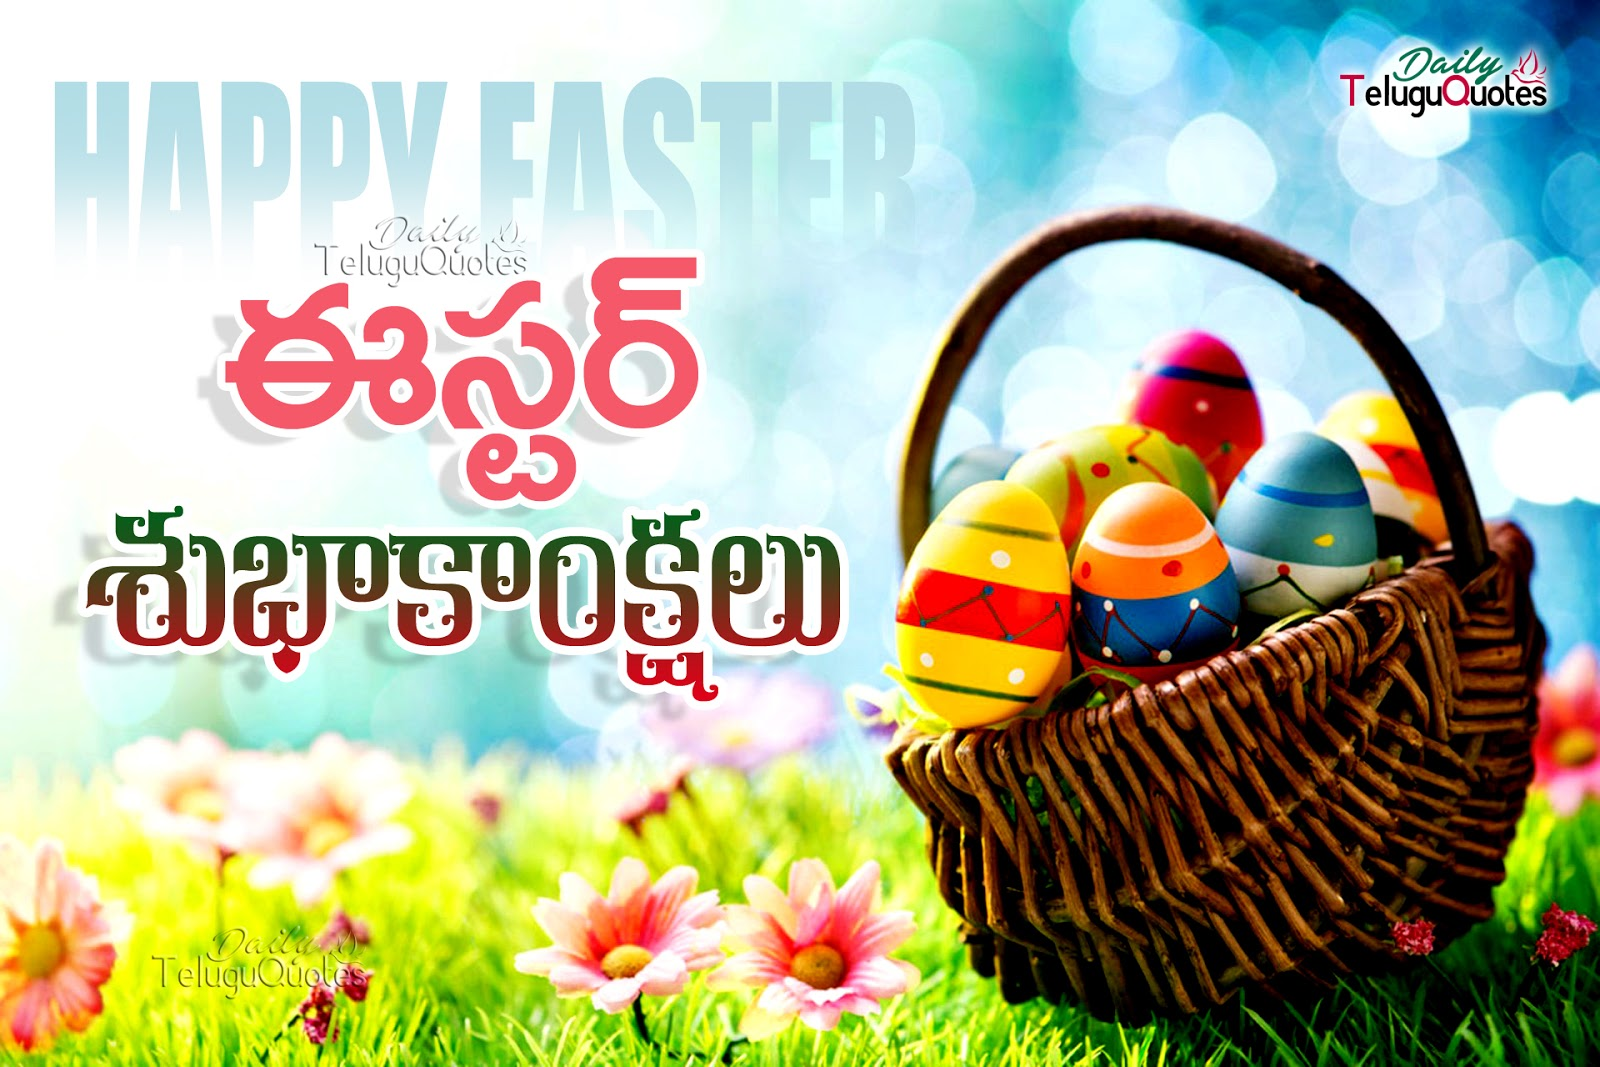 Happy Easter Telugu Quotes And Sayings Hd Wallpapers Free Downloads